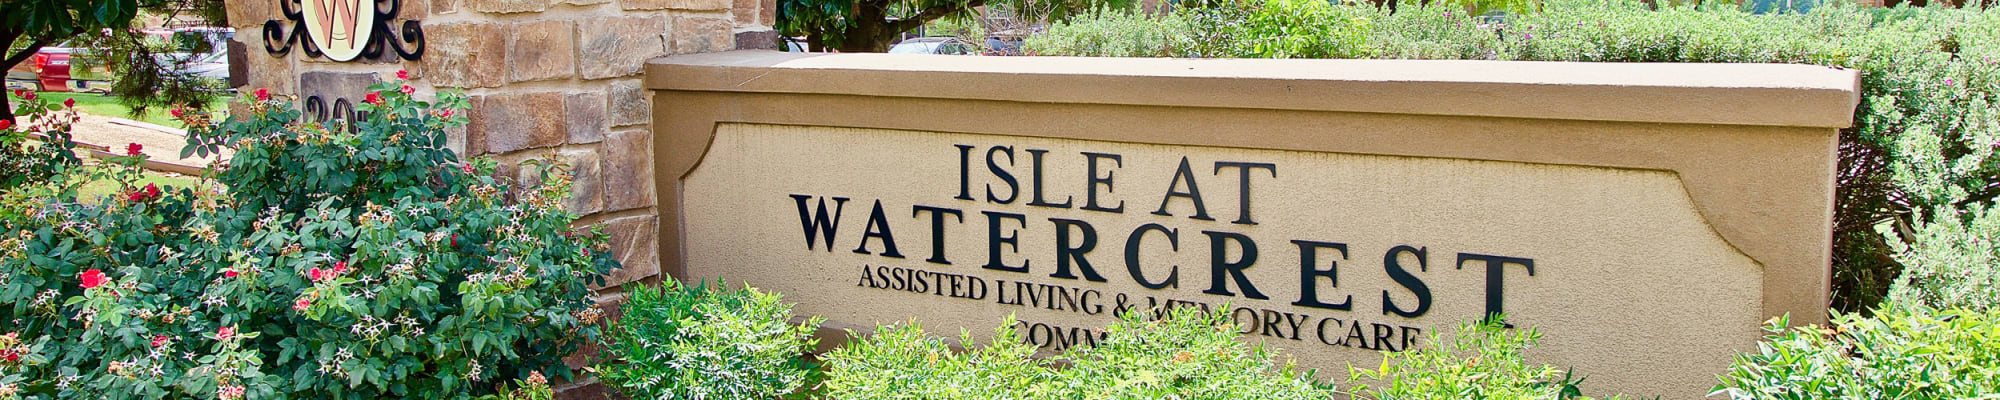 Assisted living at Isle at Watercrest Mansfield in Mansfield, Texas